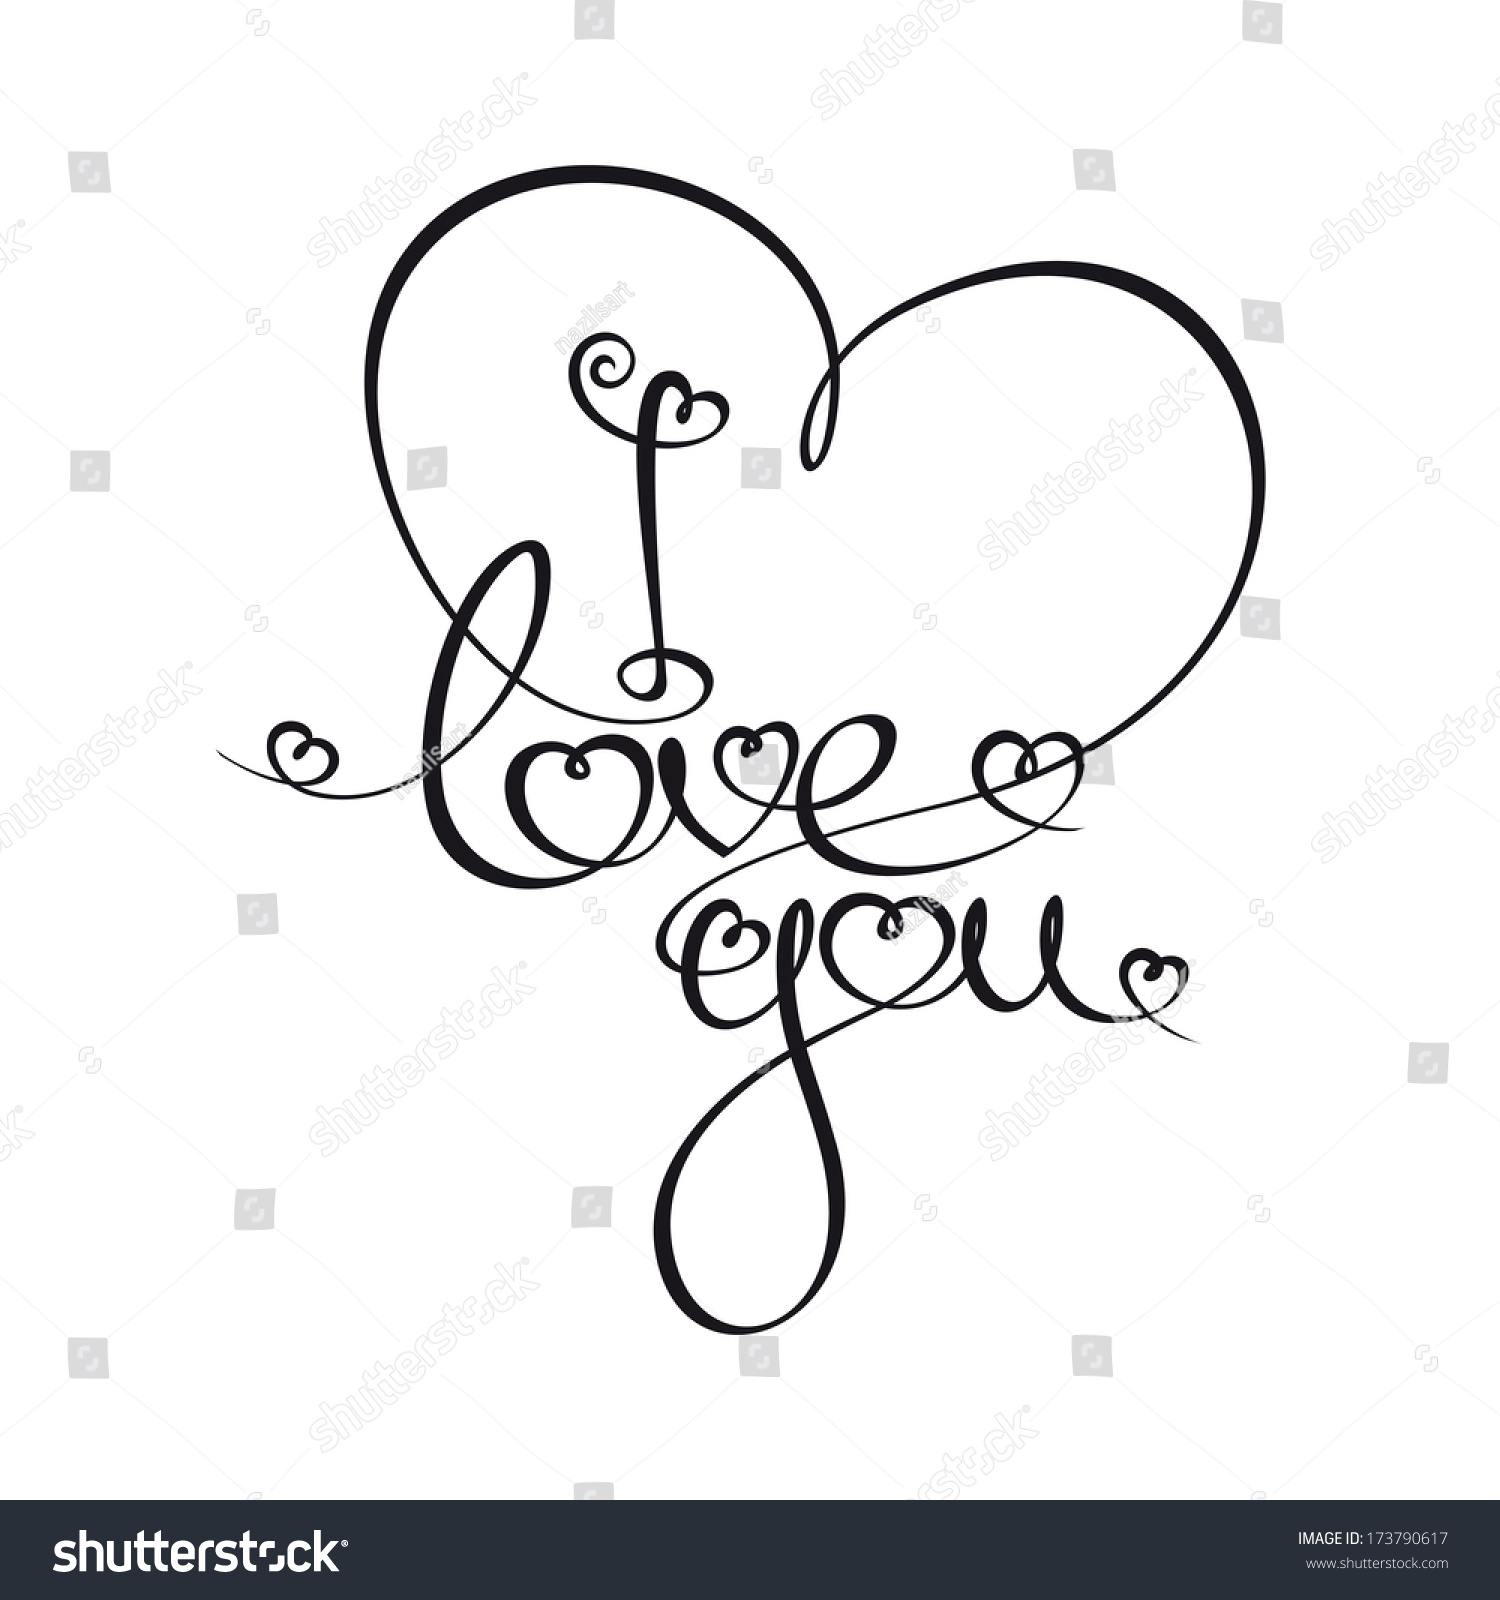 Custom handwriting calligraphic typography i love stock I love you calligraphy